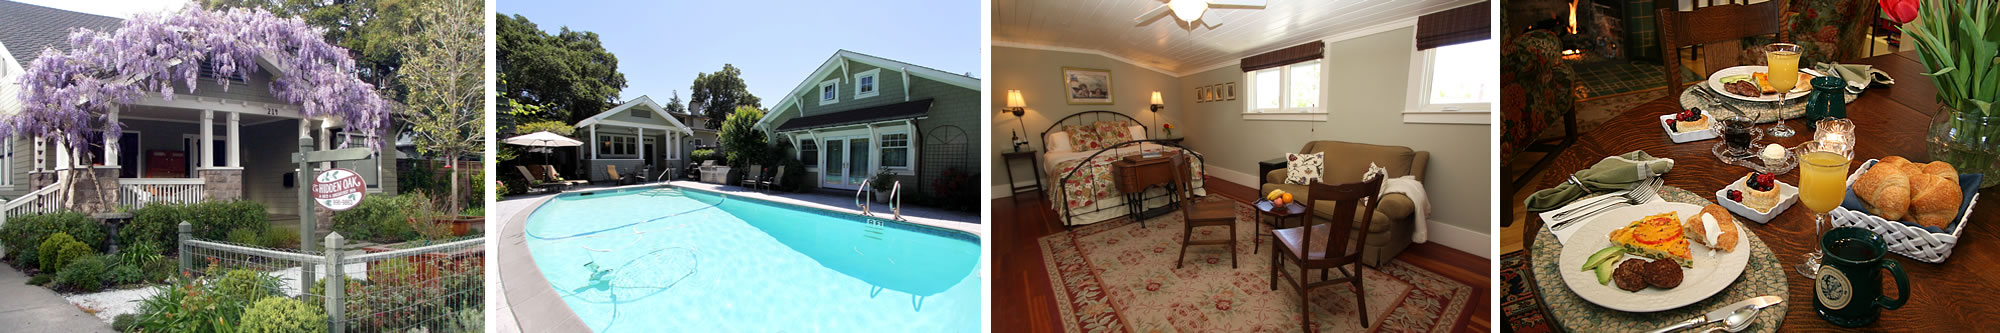 sonoma wine country inns - hidden oak bed and breakfast inn